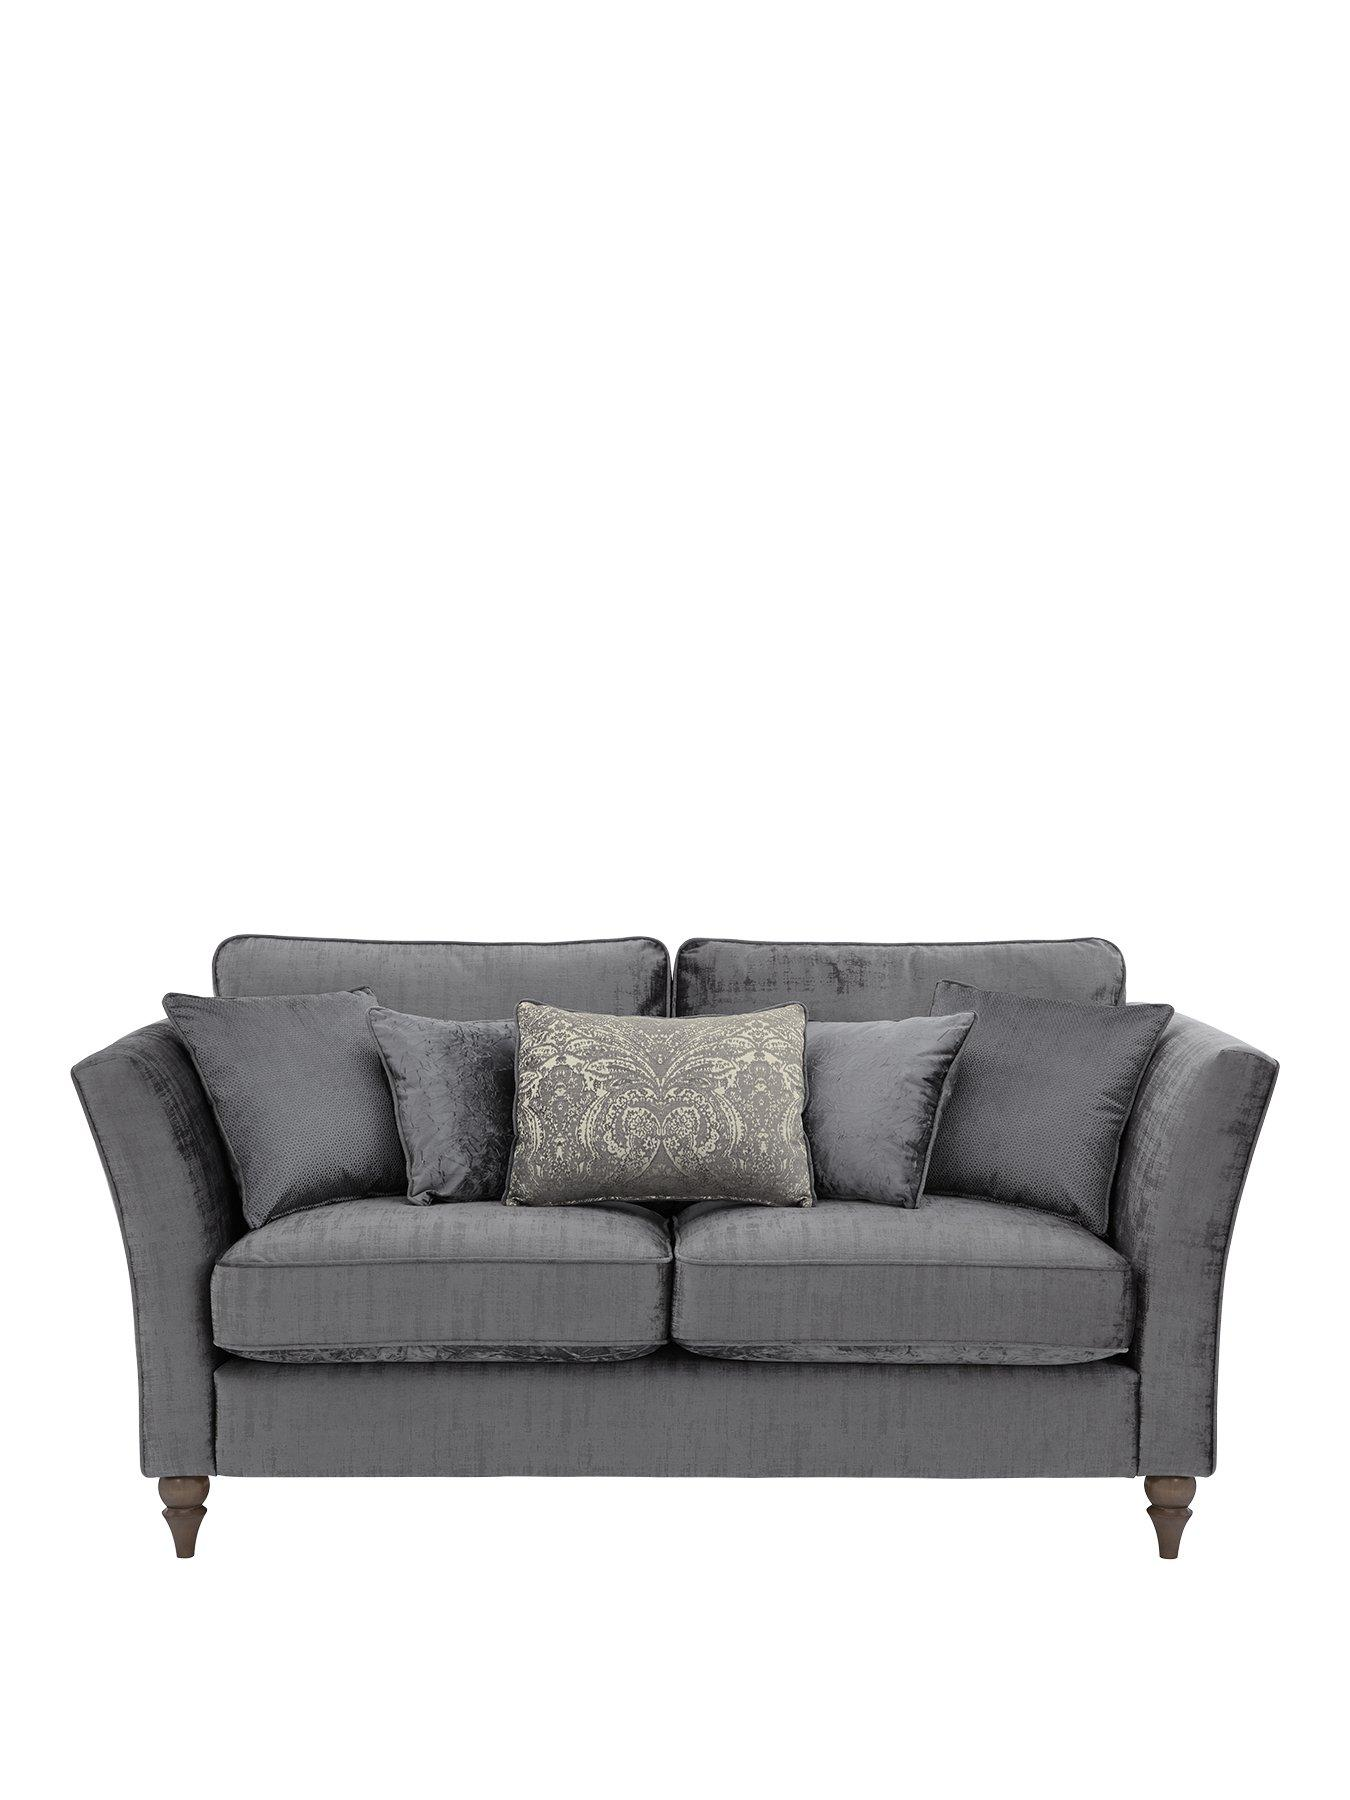 luxe 2 seat sofa slipcover chrome legs collection opulence seater fabric littlewoodsireland ie